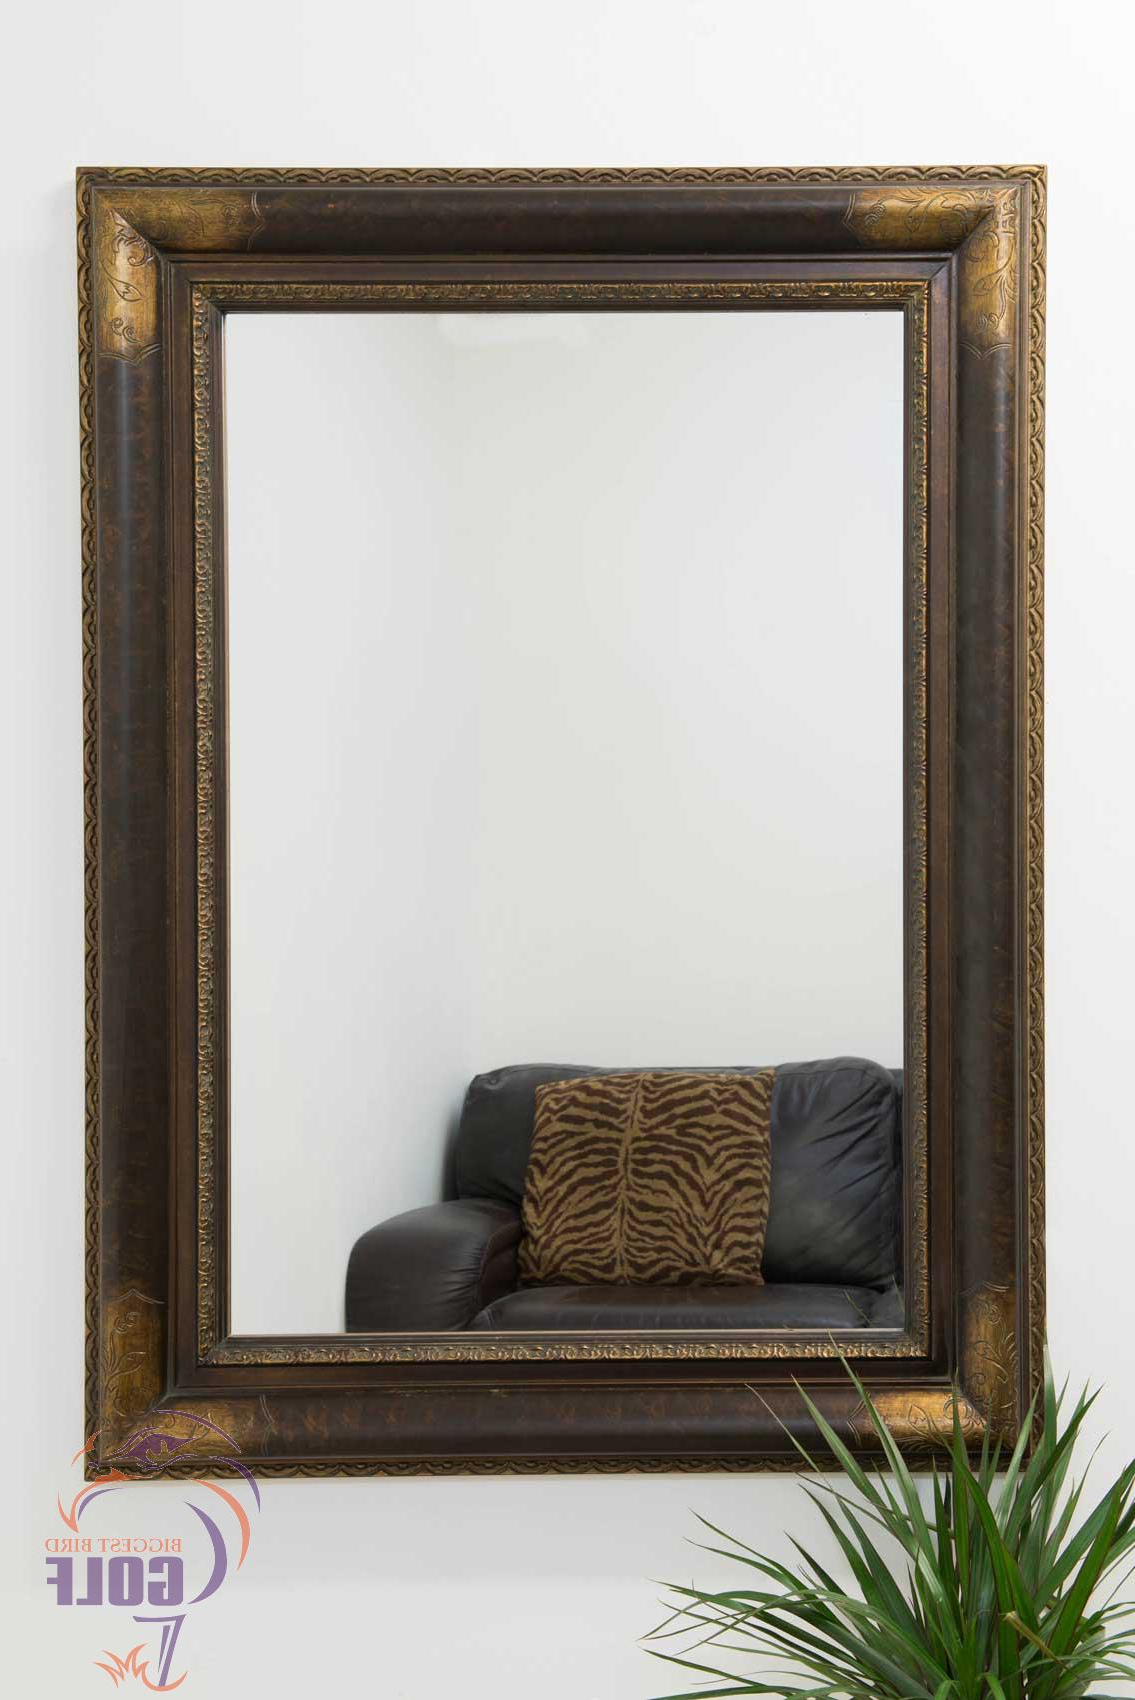 Large Gold And Bronze Ornate Big Shabby Chic Wall Mirror 3Ft10 X 2Ft10  115Cm X 8 Within Latest Shabby Chic Wall Mirrors (View 7 of 20)